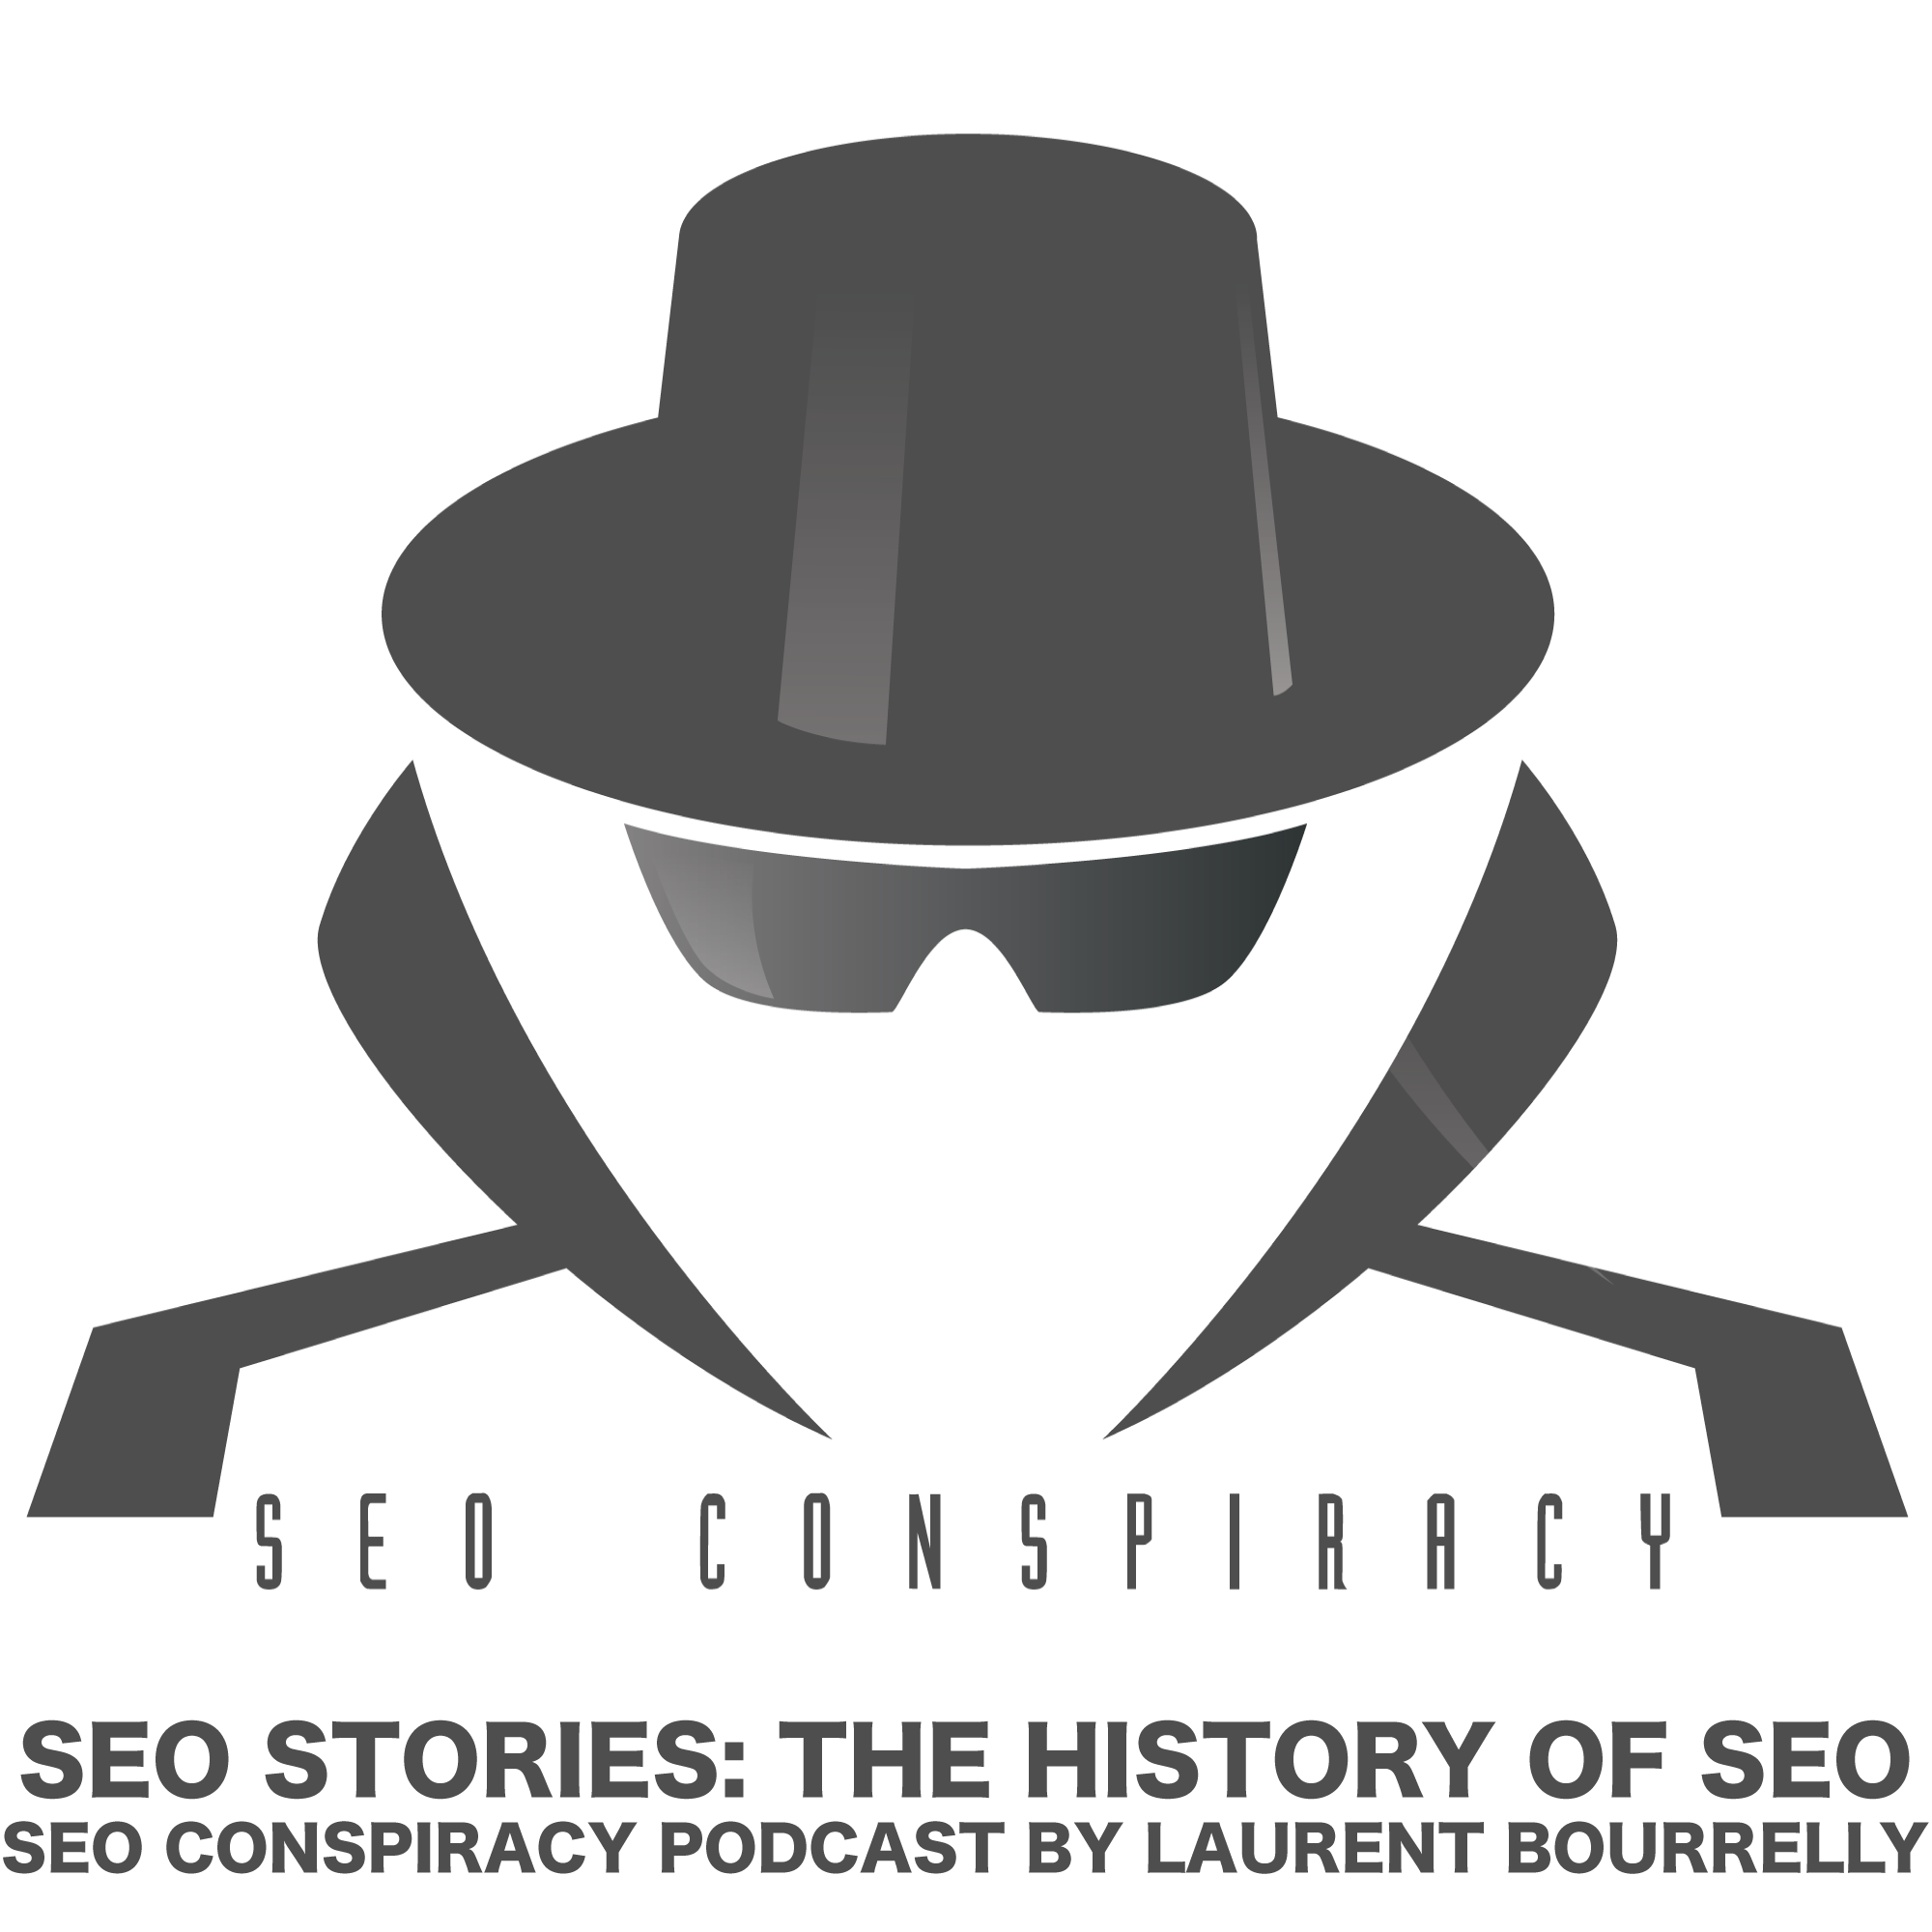 How Does Google Work : From Strings To Things - Understand a Search Engine for Advanced SEO